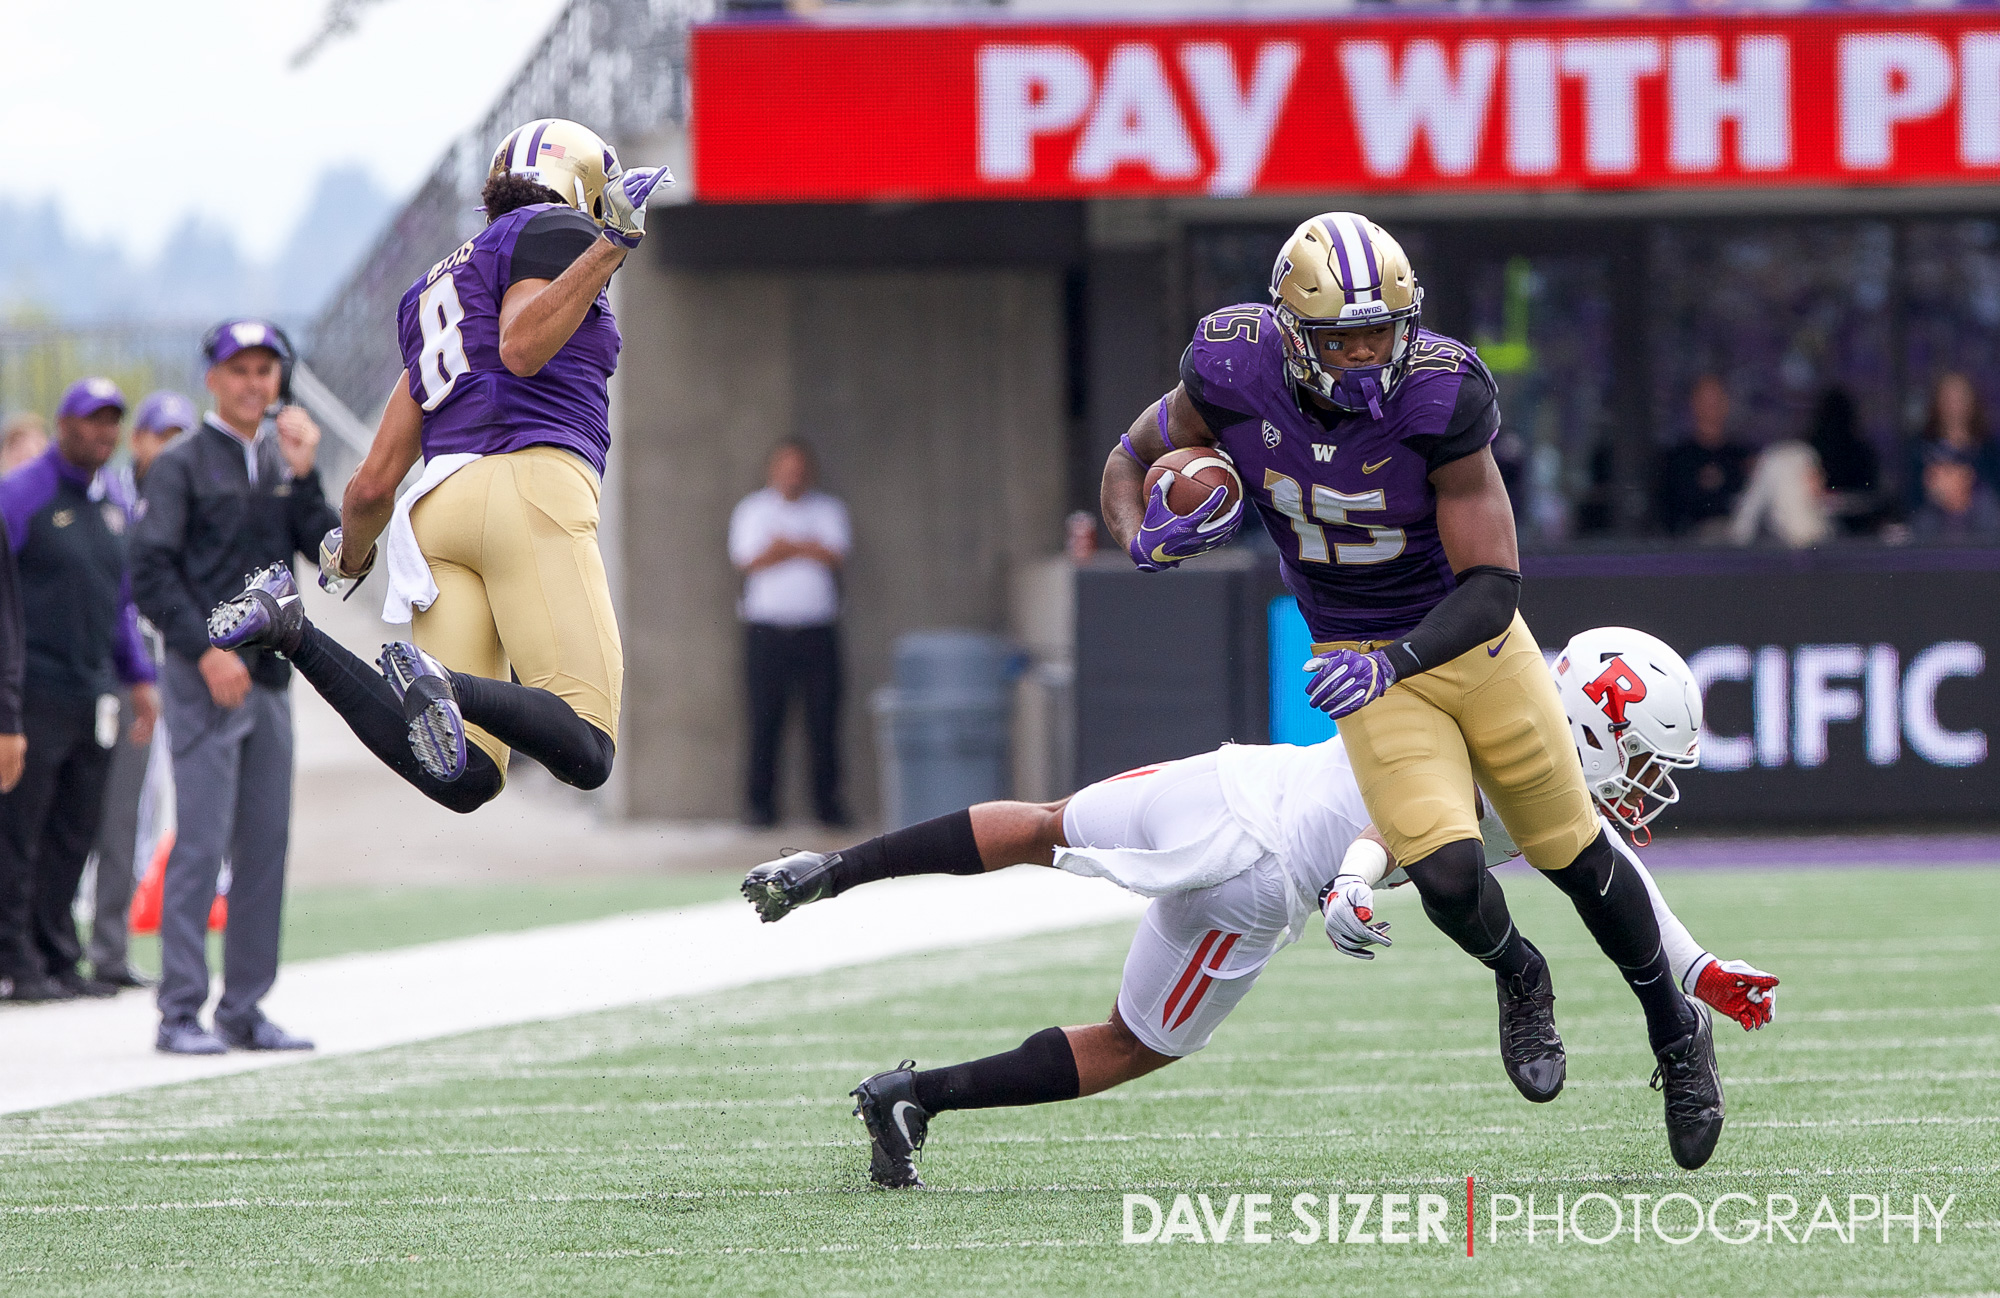 Darrell Daniels runs upfield as Dante Pettis tries to get out of the way.